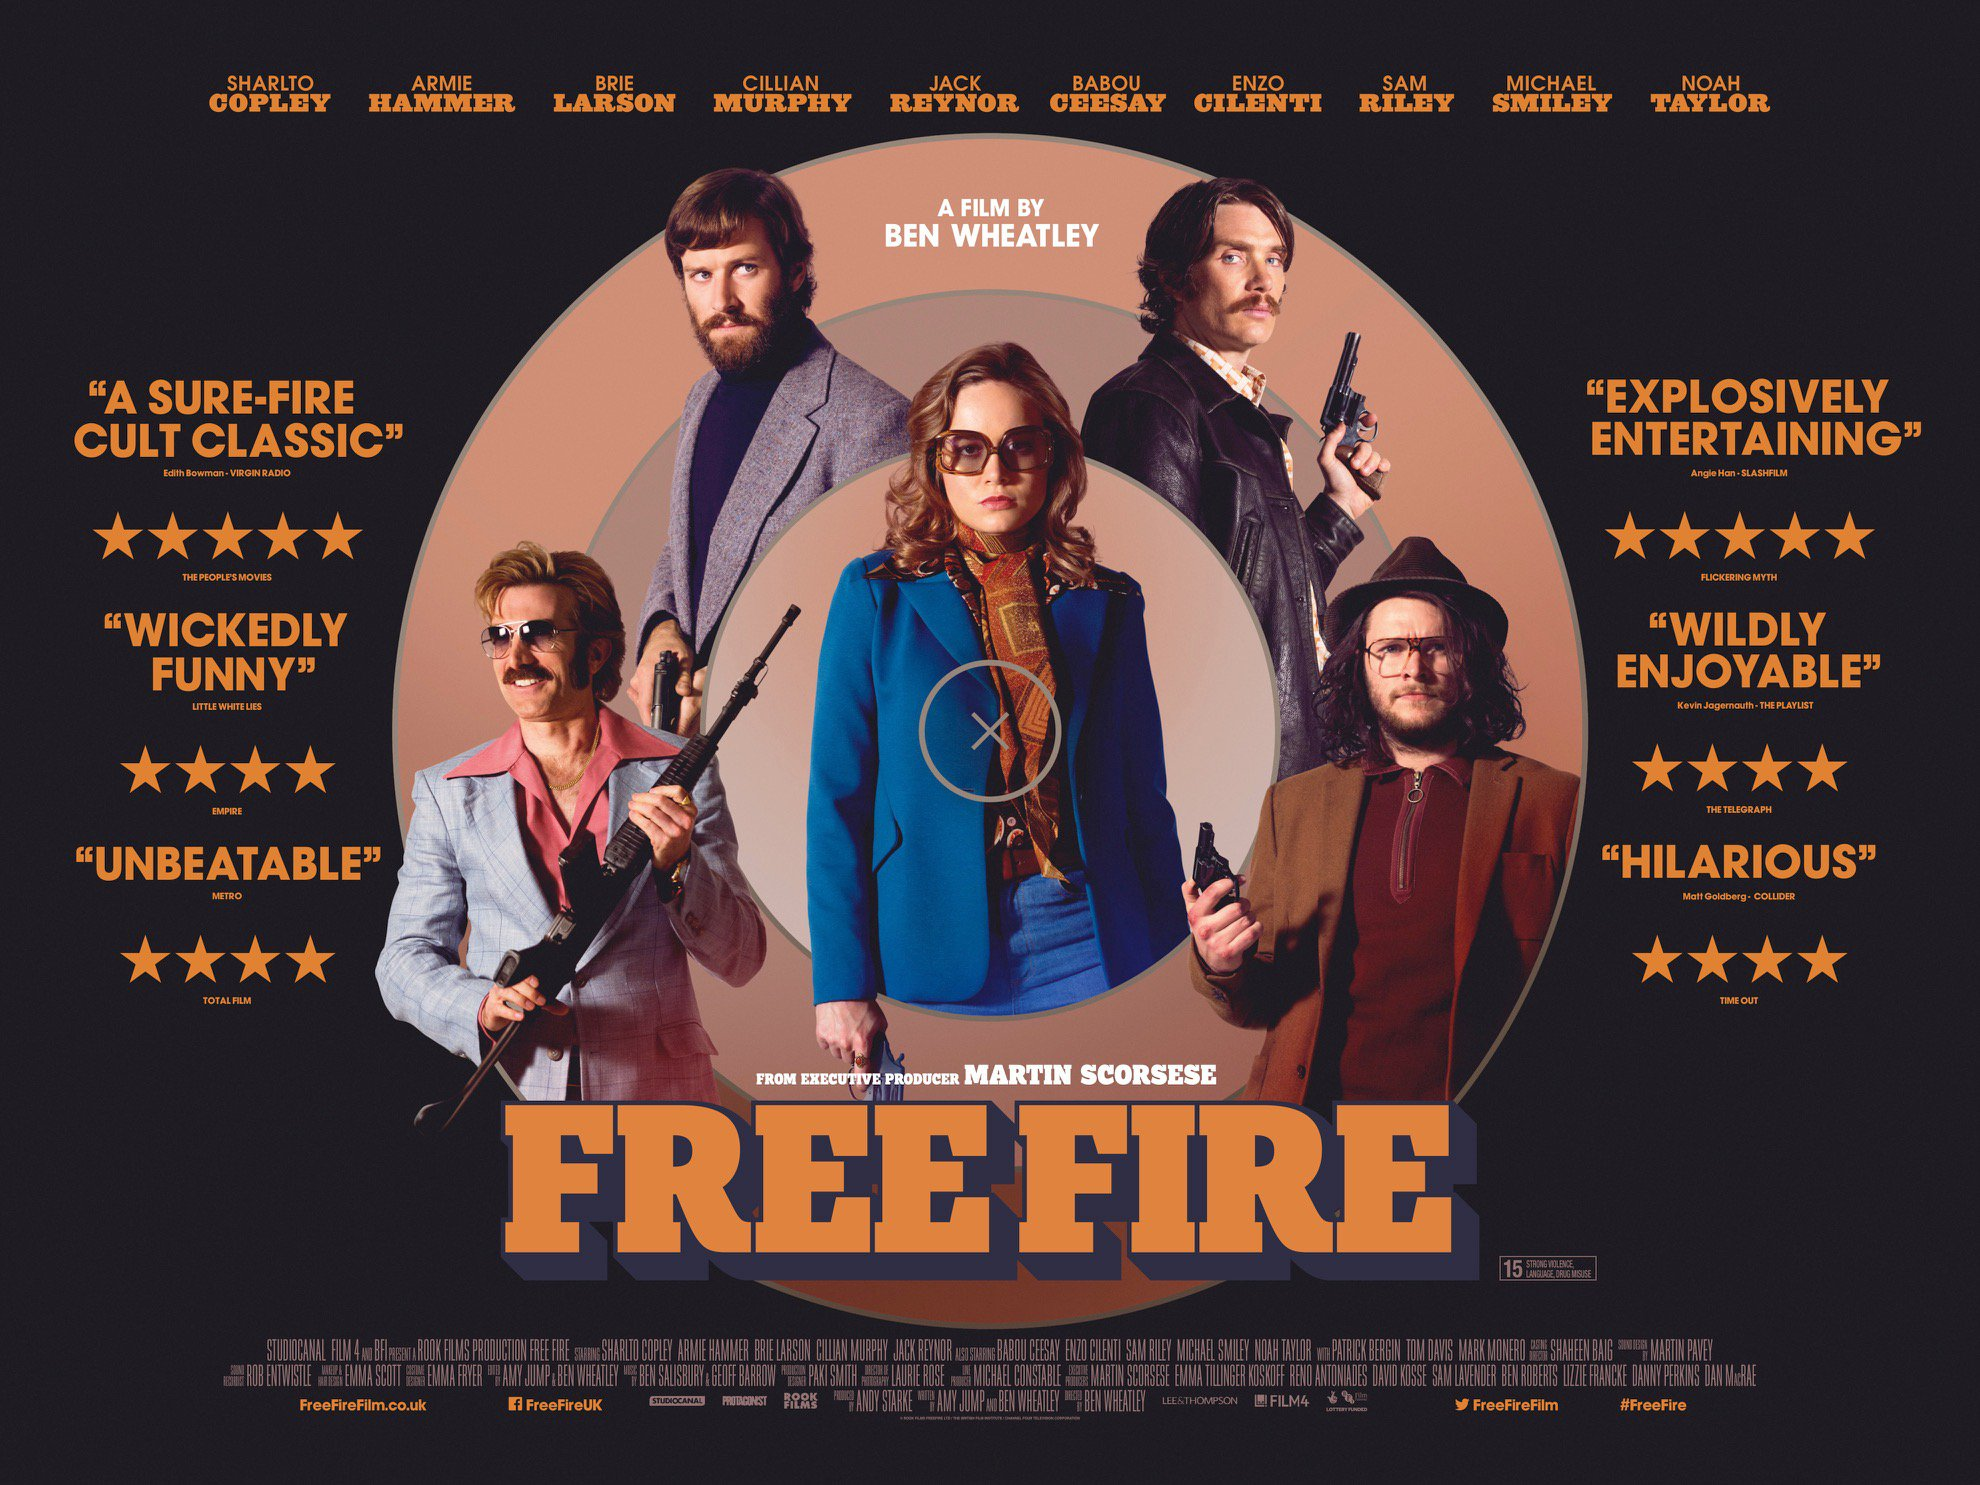 Free fire uk quad 2